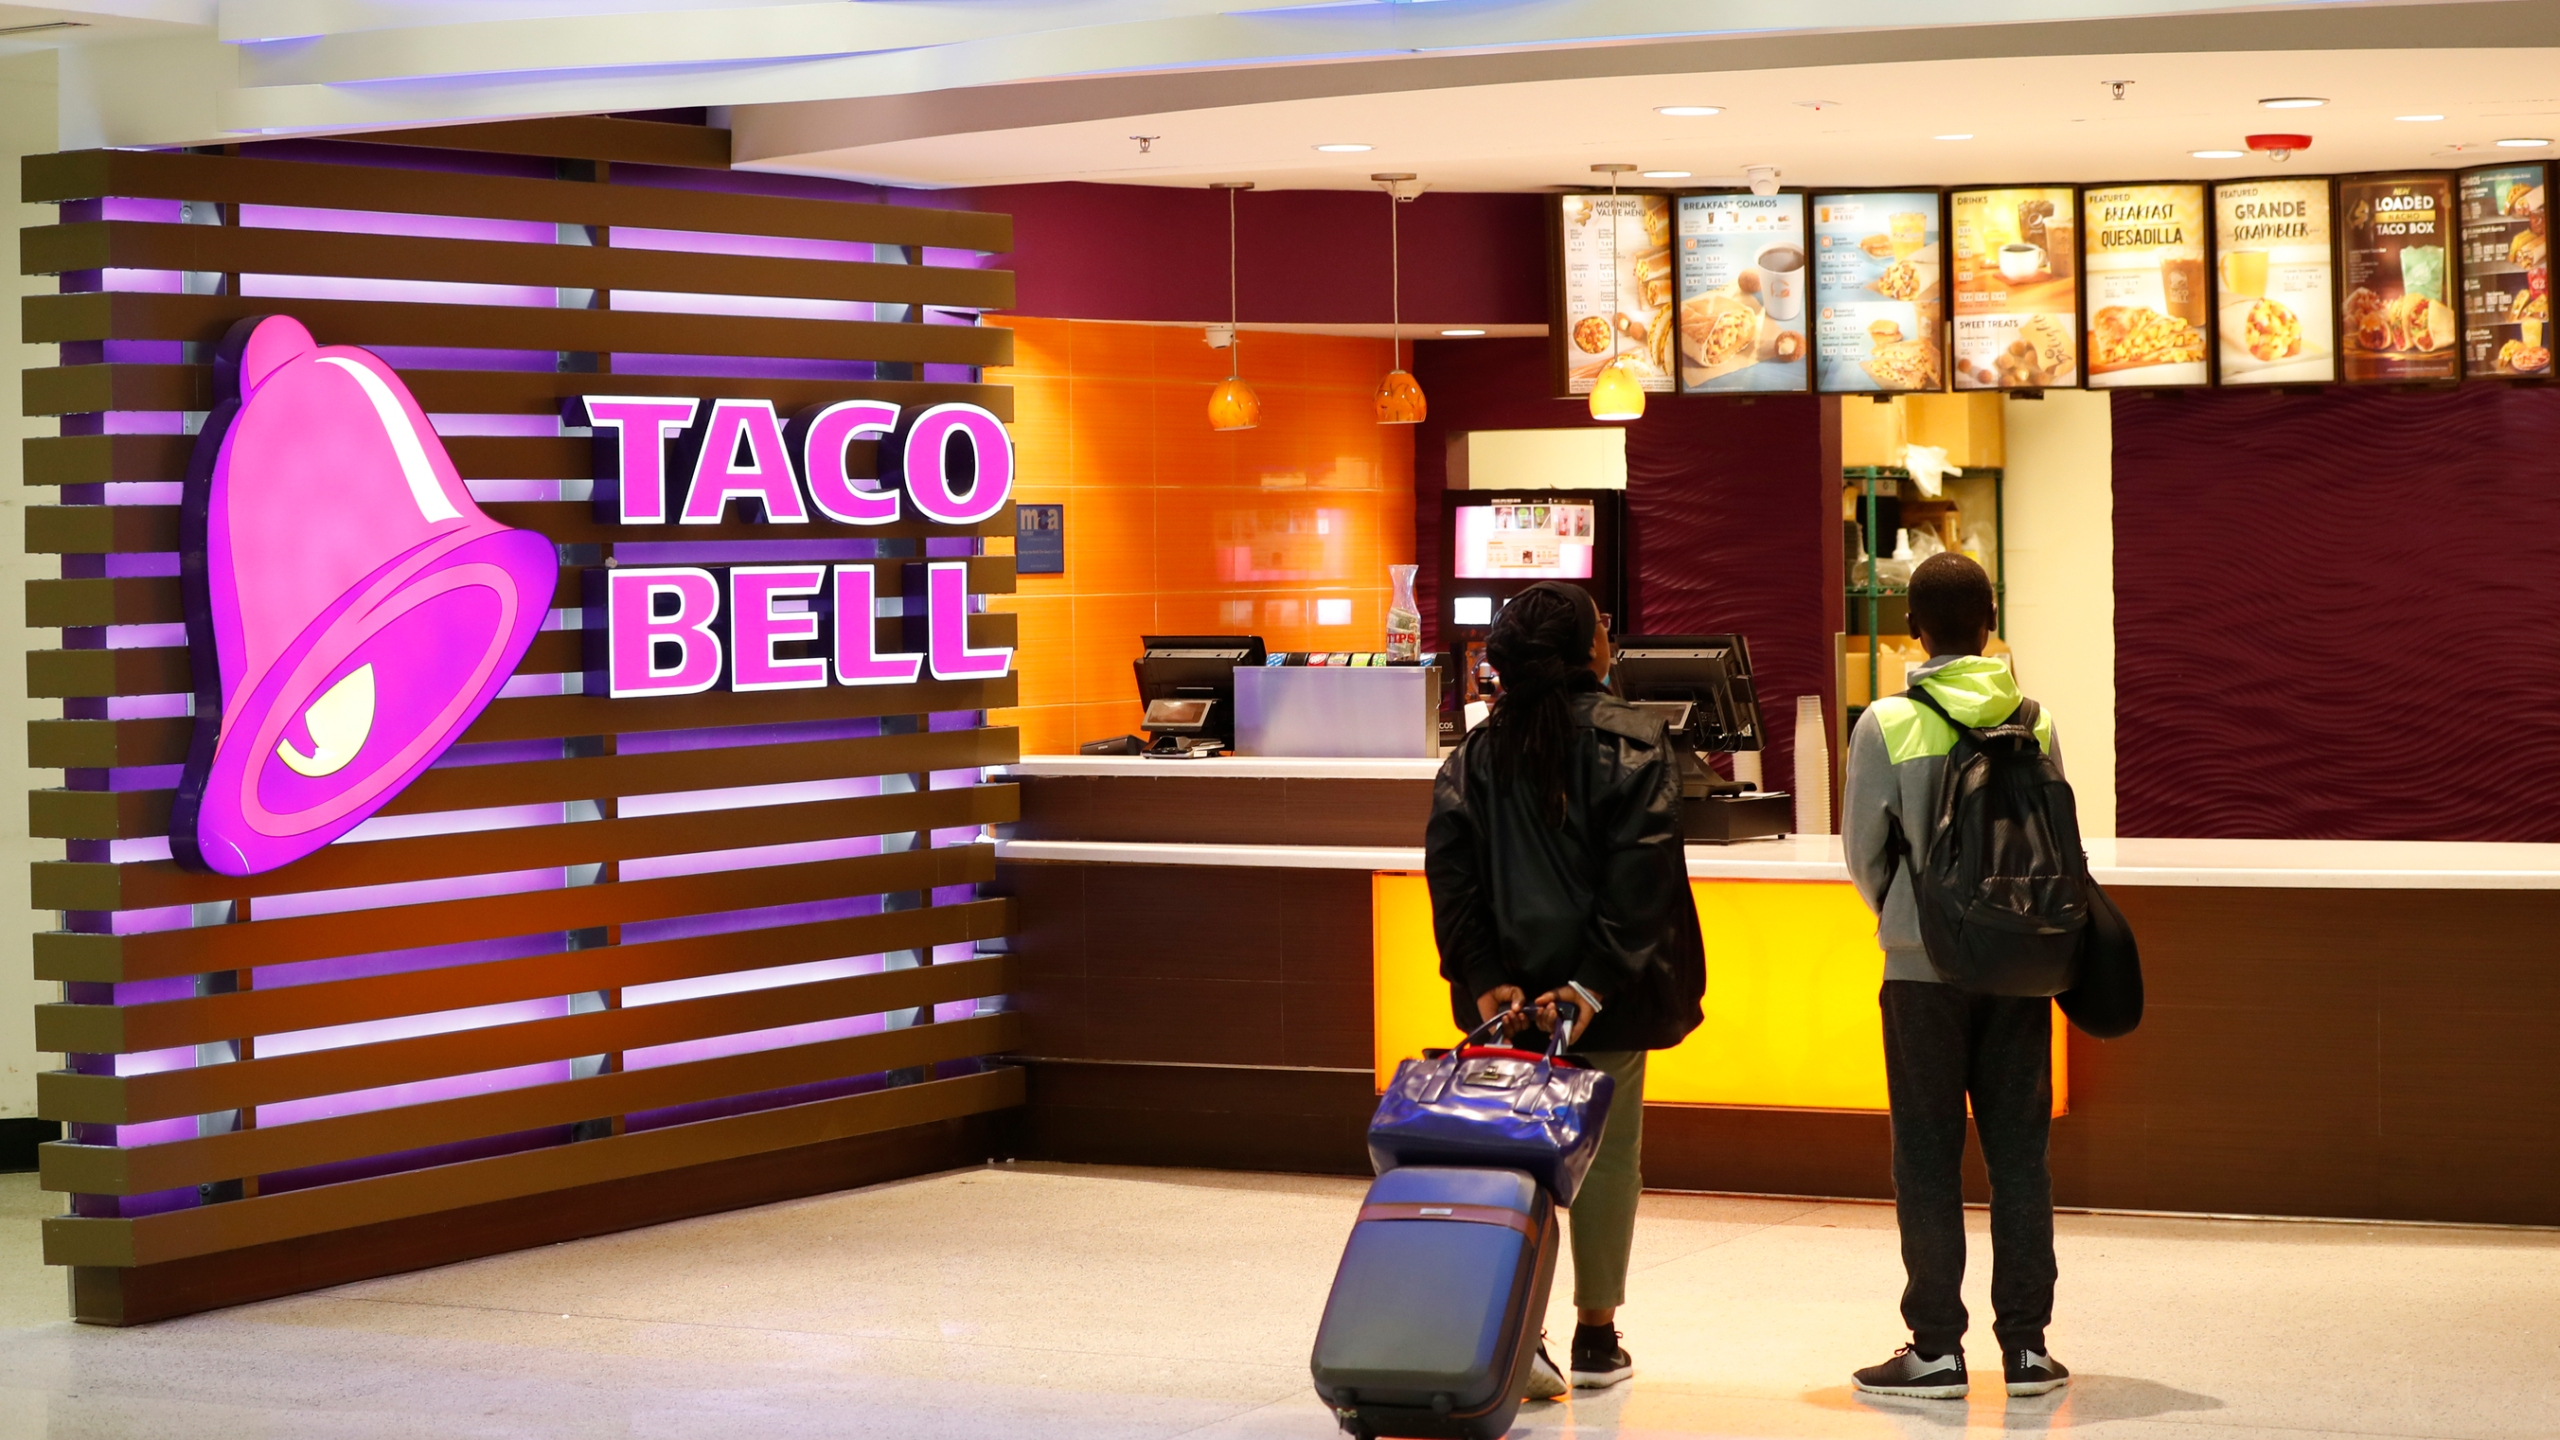 Taco Bell Hotel_1558076957197